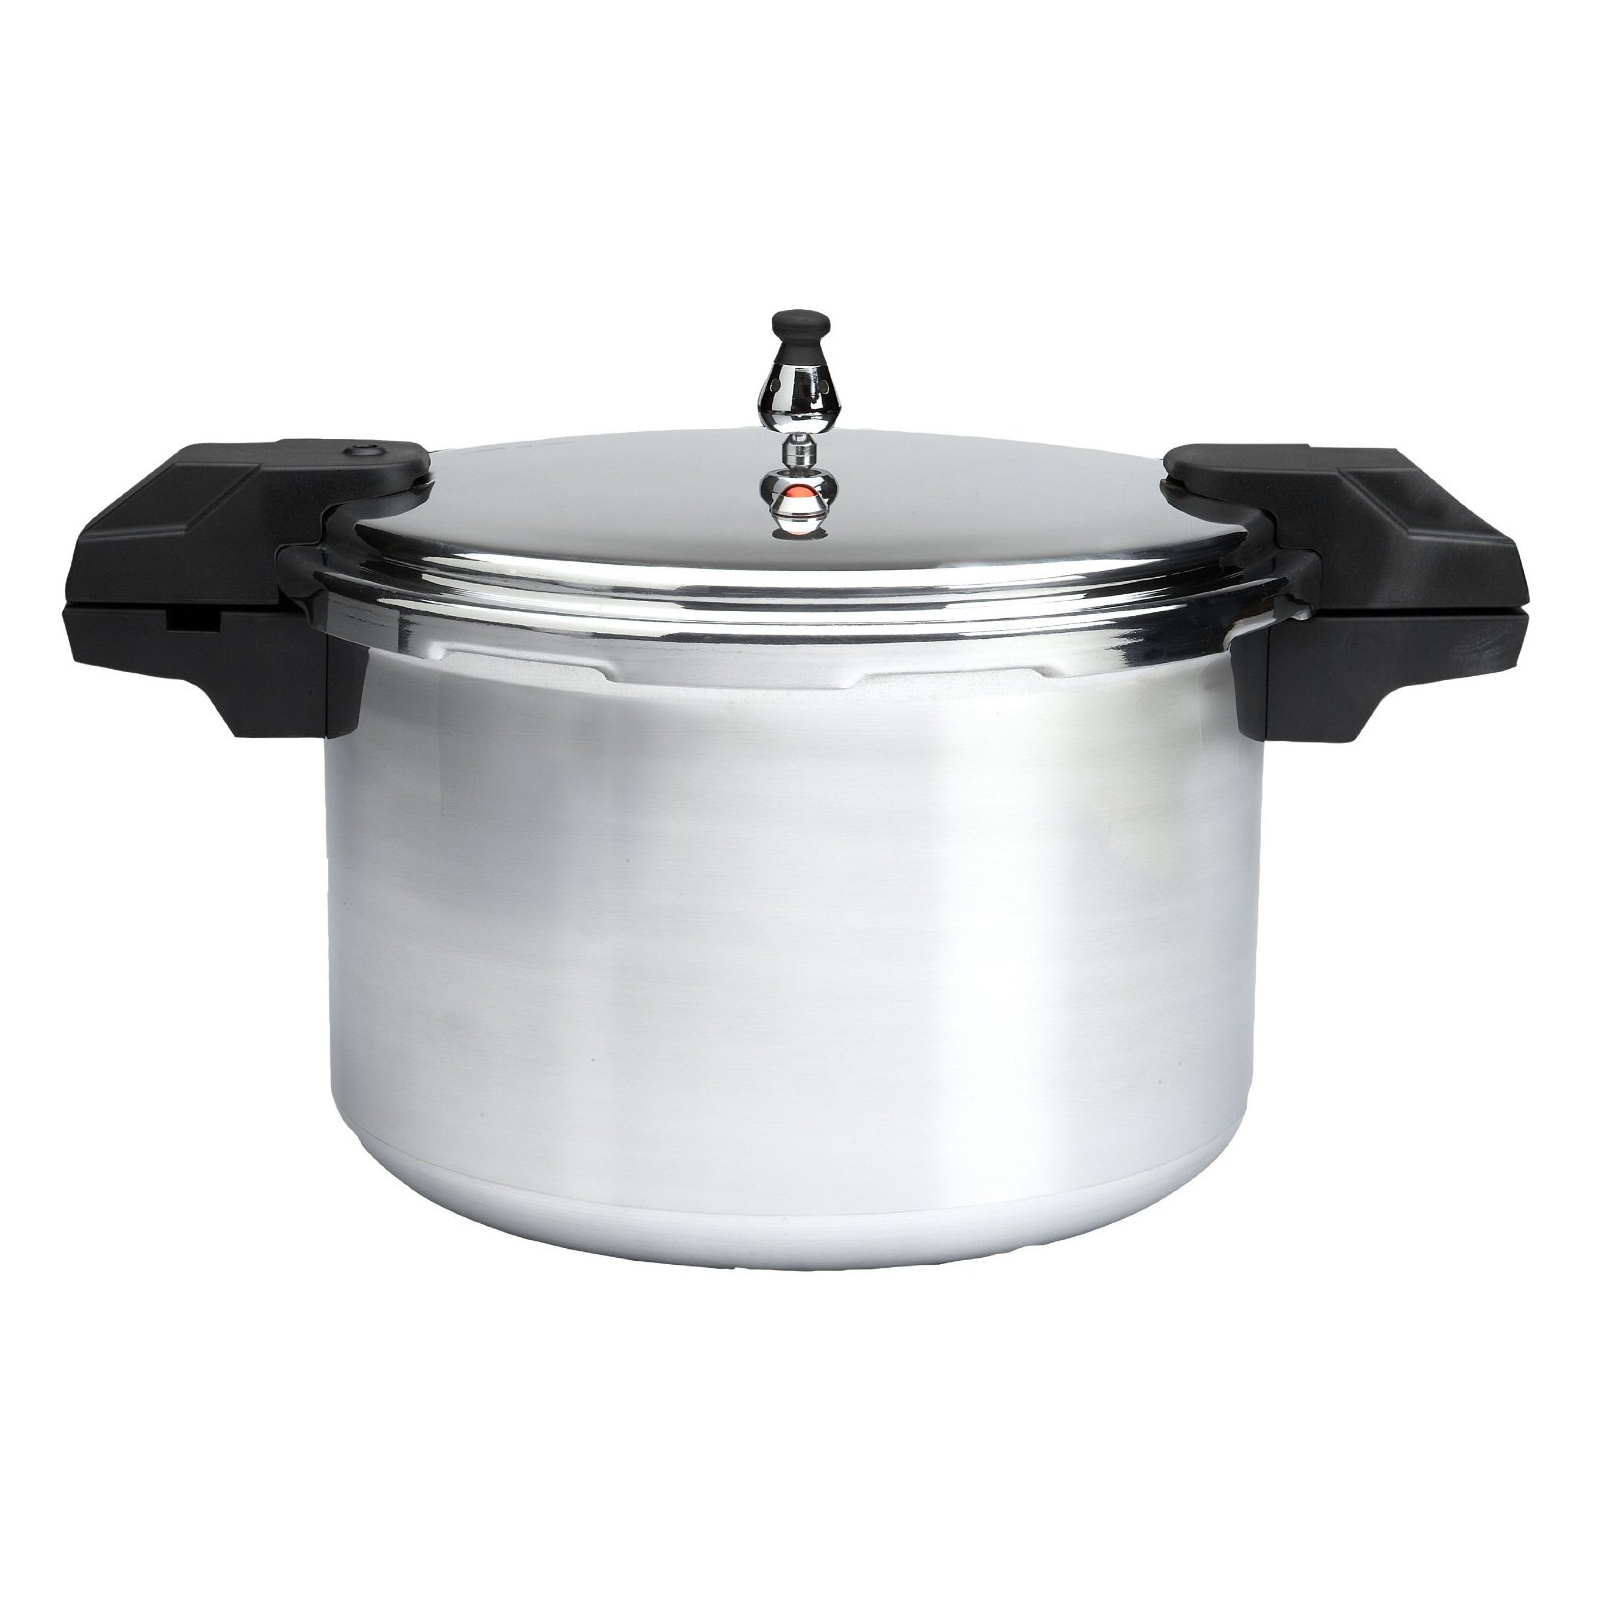 Mirro 16 Quart Pressure Cooker and Canner